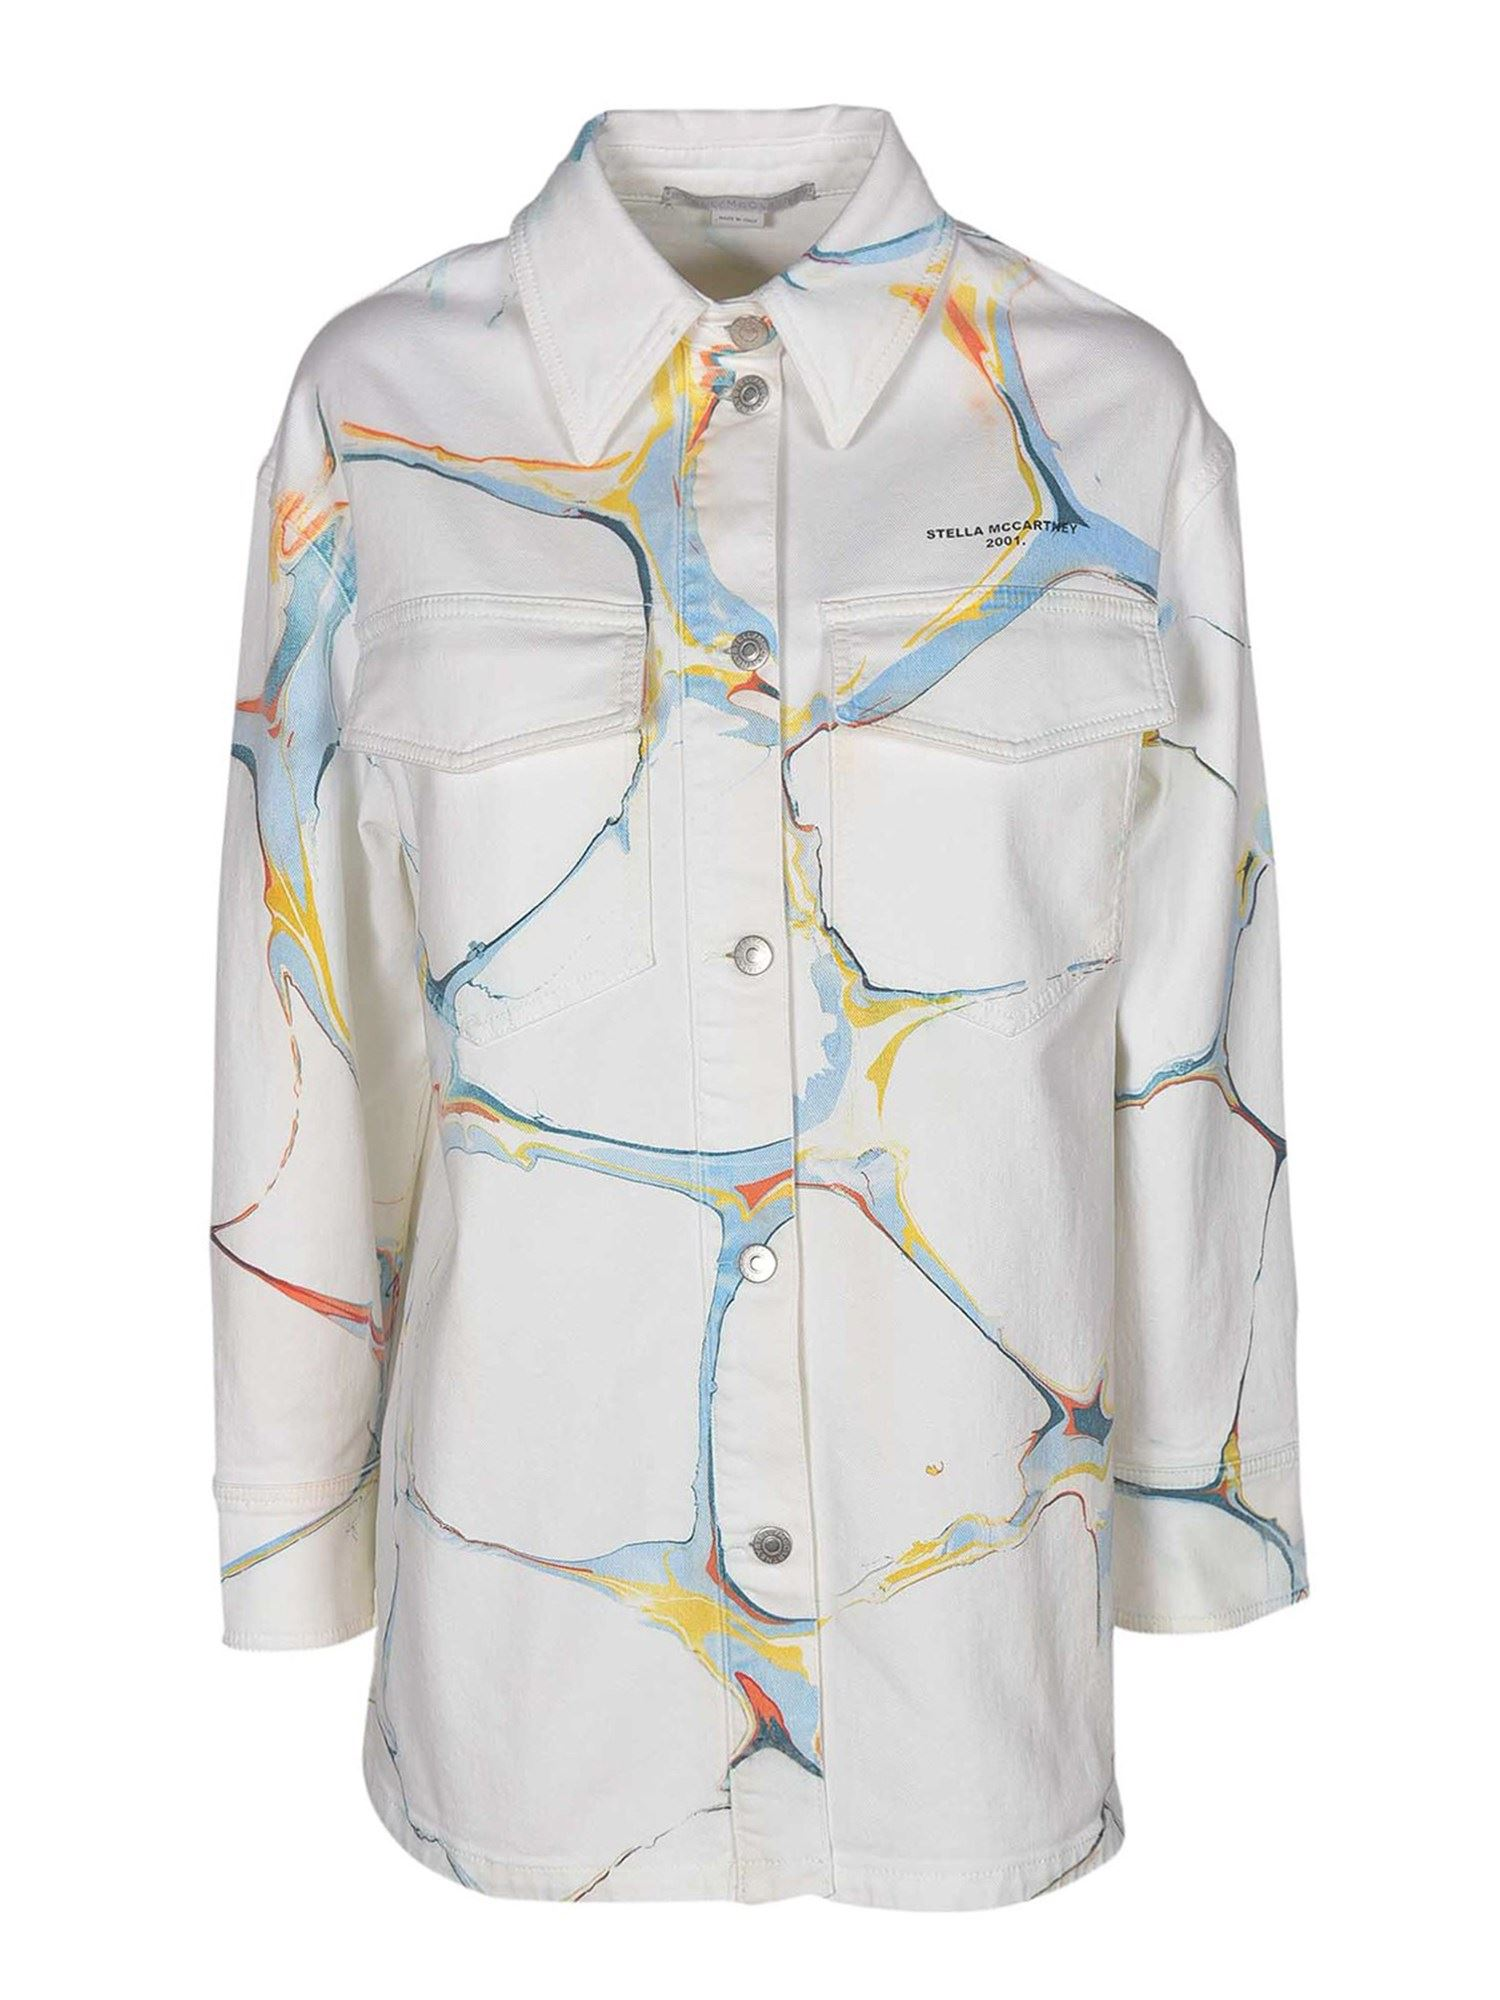 Stella Mccartney STELLA MCCARTNEY PATTERNED DENIM JACKET IN WHITE